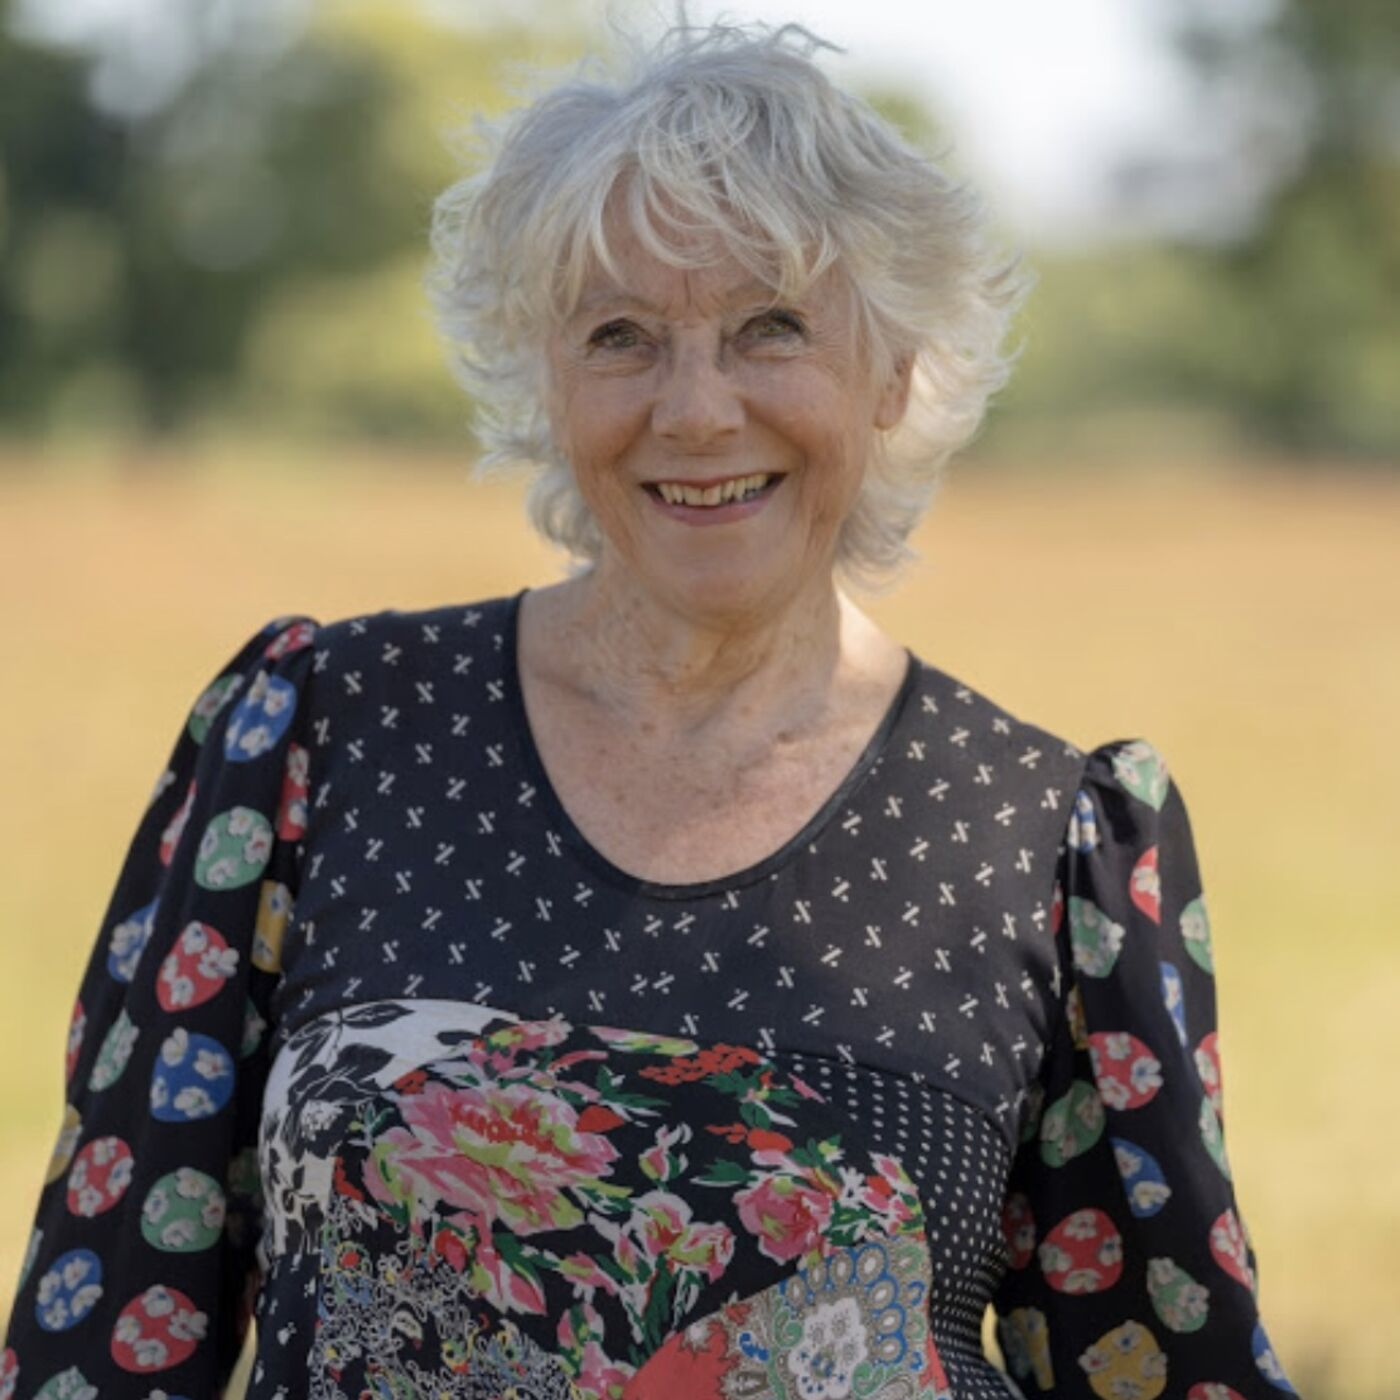 Comedy Writing Legends Prog 2 Part Two - Jan Etherington - Second Thoughts, Faith in the Future, Next of Kin and working with Lynda Bellingham, Penelope Keith and Joanna Lumley